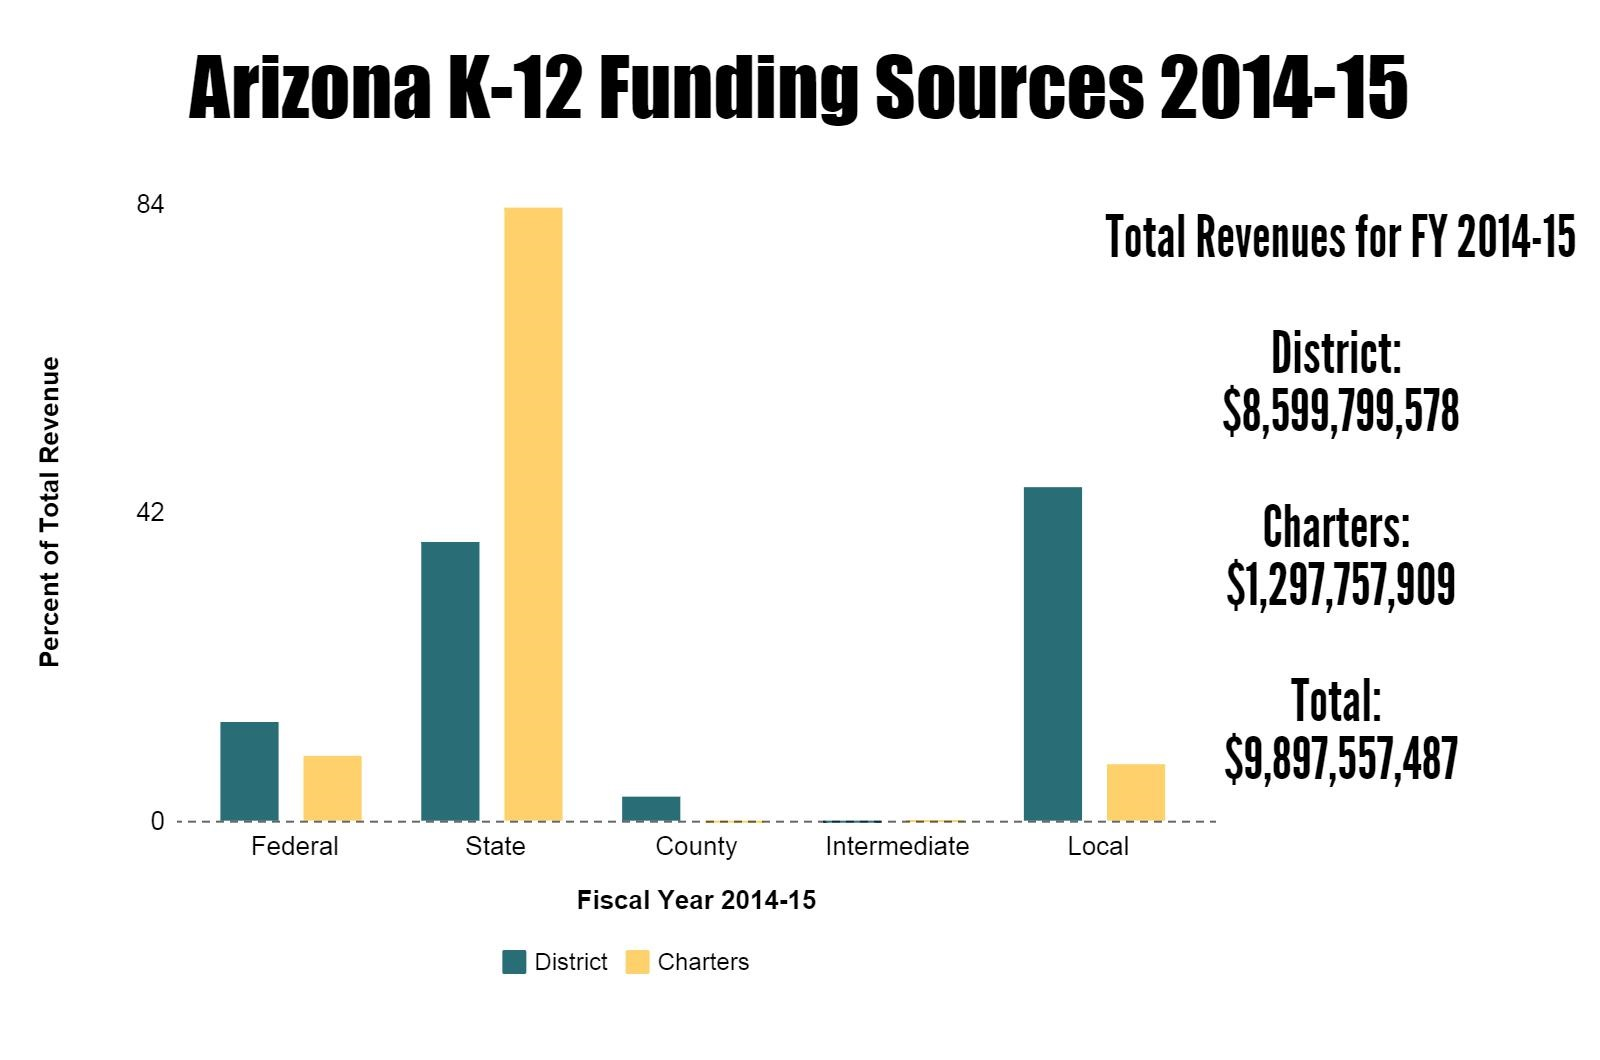 AZ student snapshot: Who they are and what's spent on them (+ Infographic) Updatedazk-12fundingsources2014-15